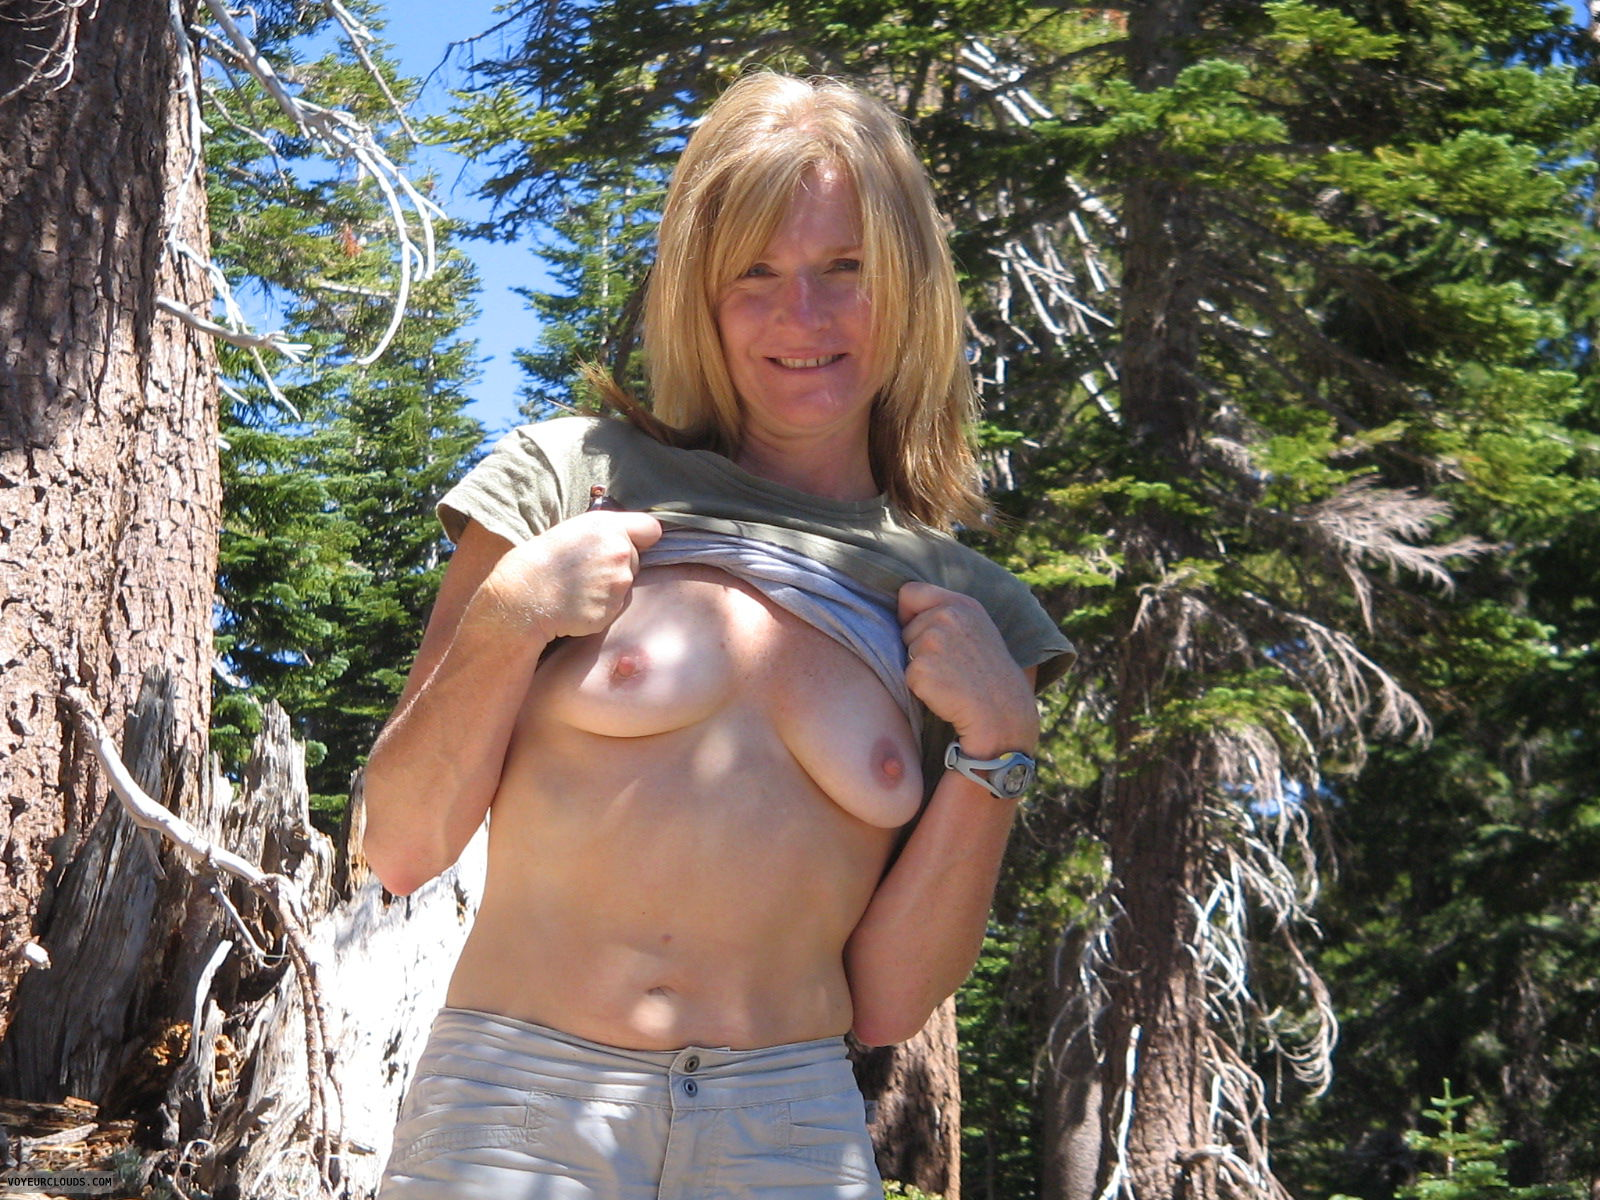 Milf outdoor camping porn galleries